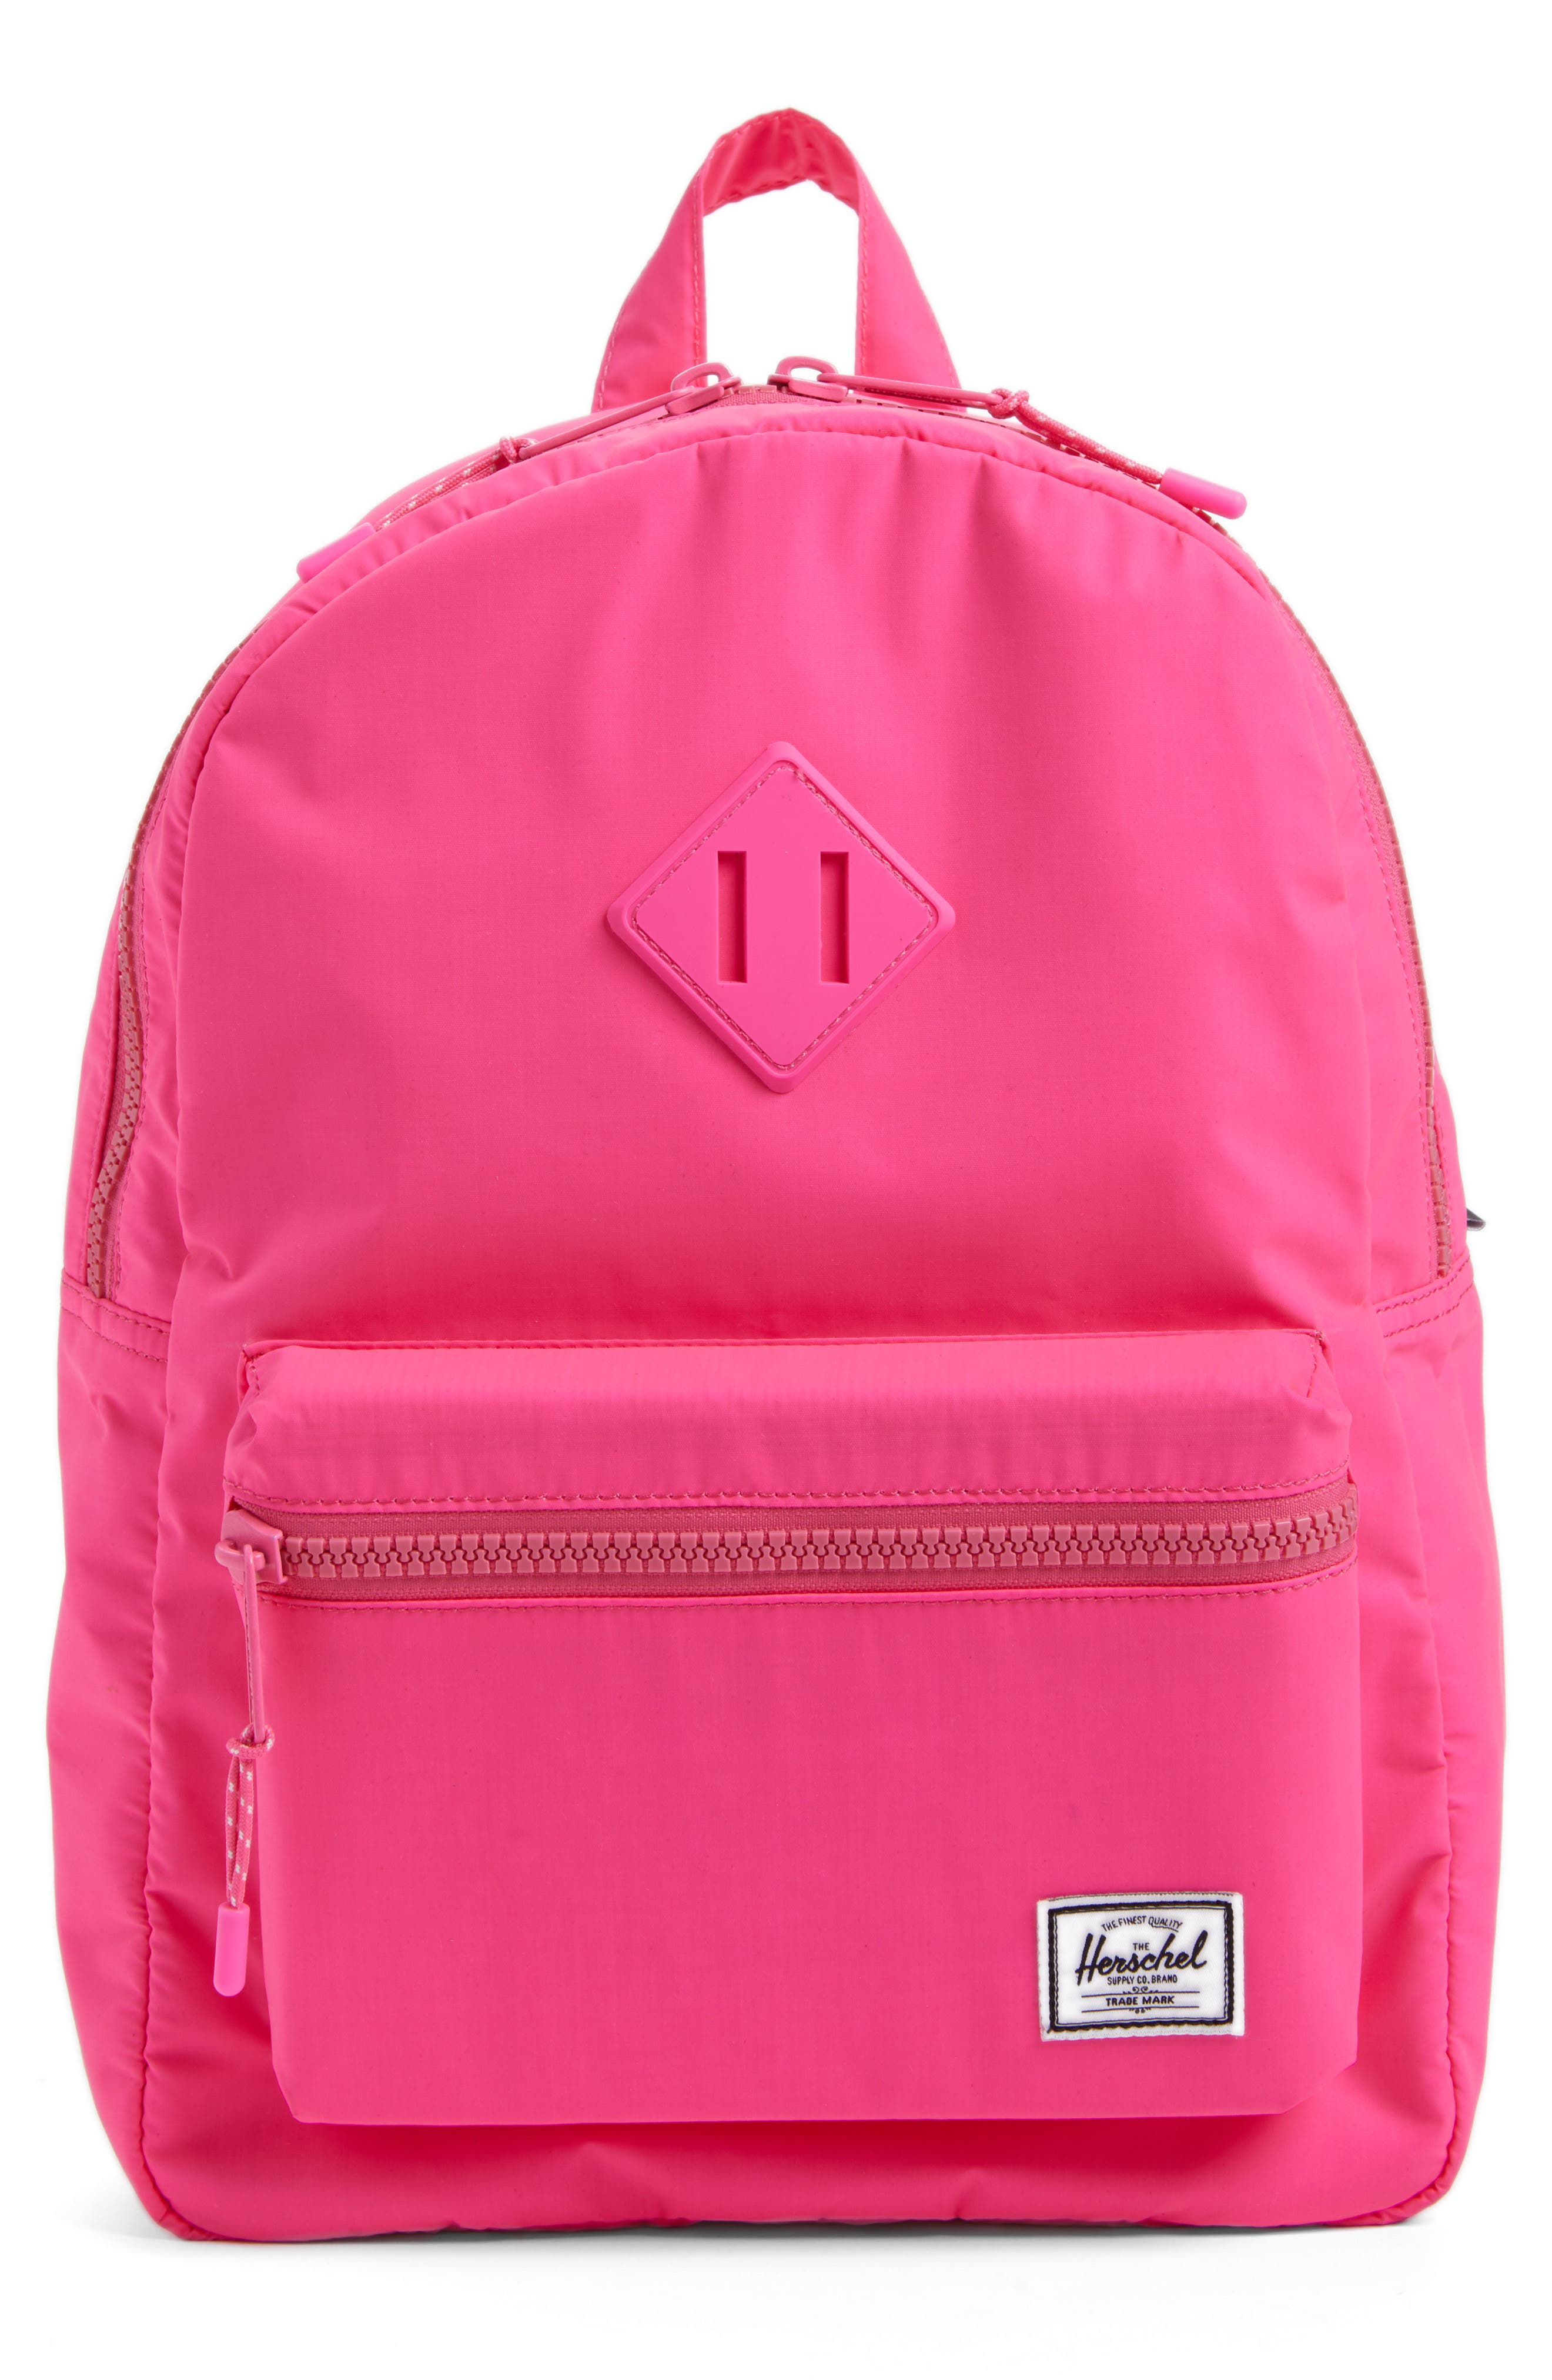 Heritage Backpack,                         Main,                         color, Neon Pink Rubber